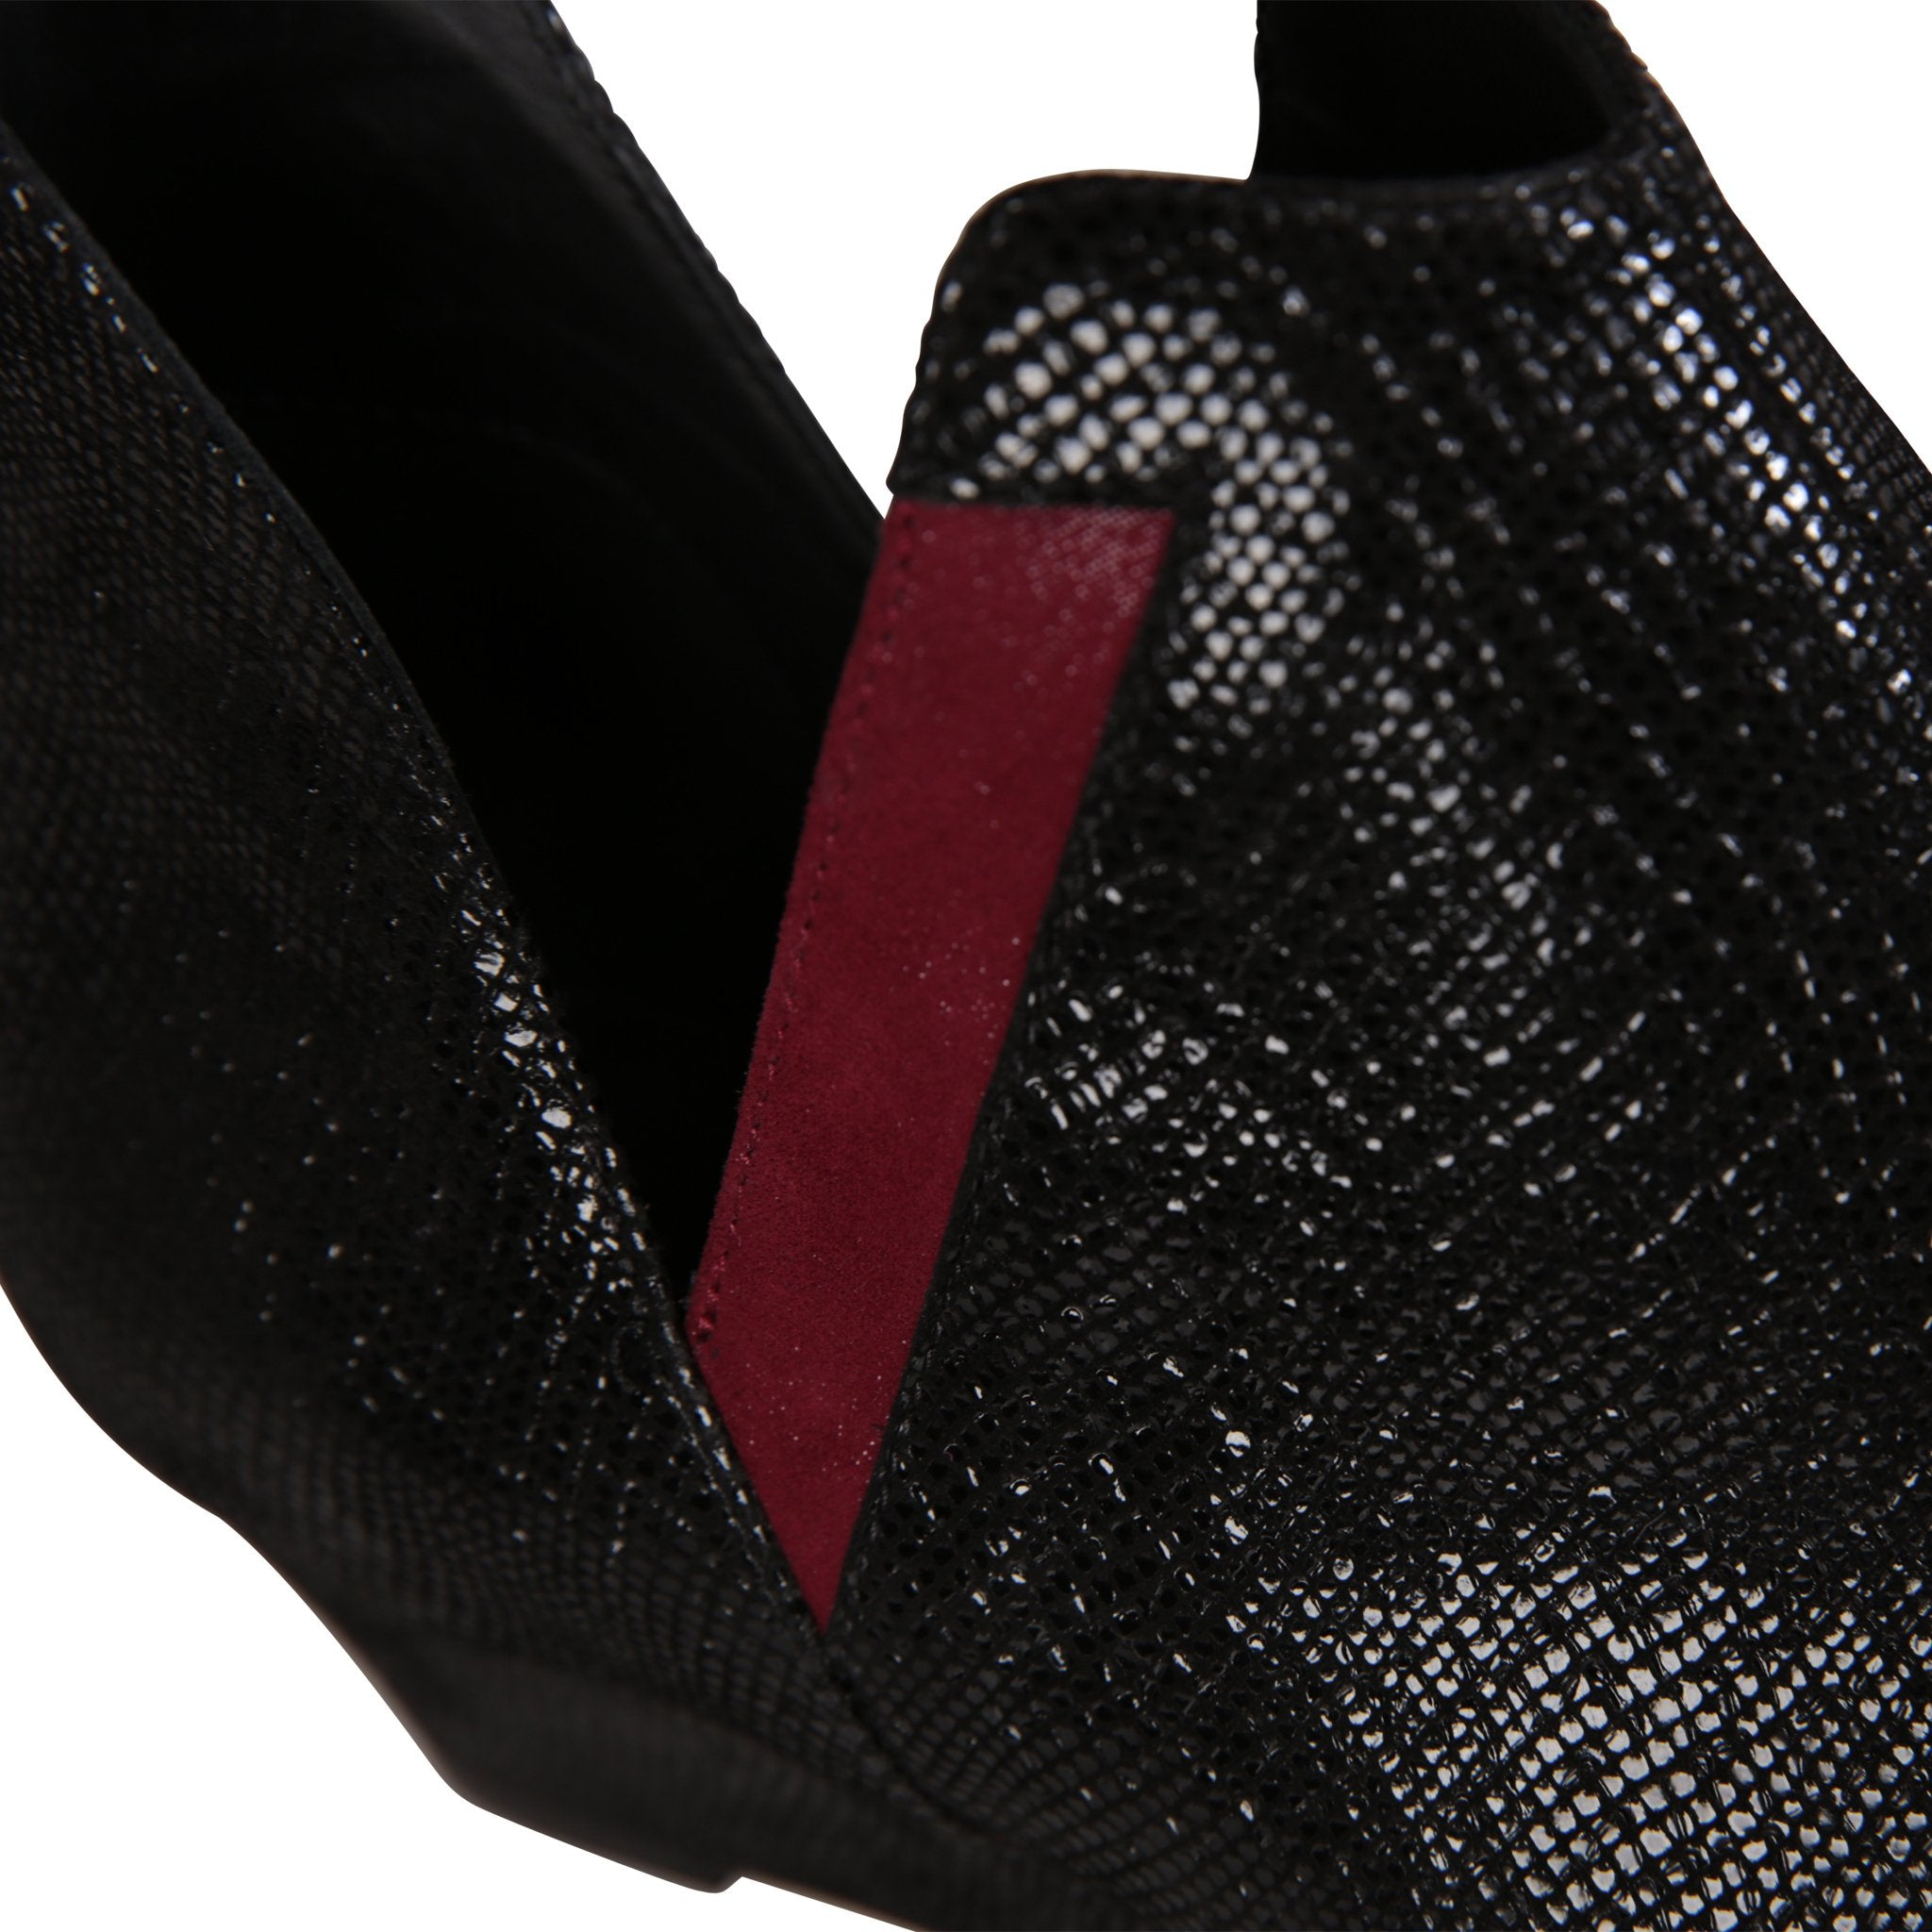 SYRENE - Karung Nero + Hydra Bordeaux, VIAJIYU - Women's Hand Made Sustainable Luxury Shoes. Made in Italy. Made to Order.